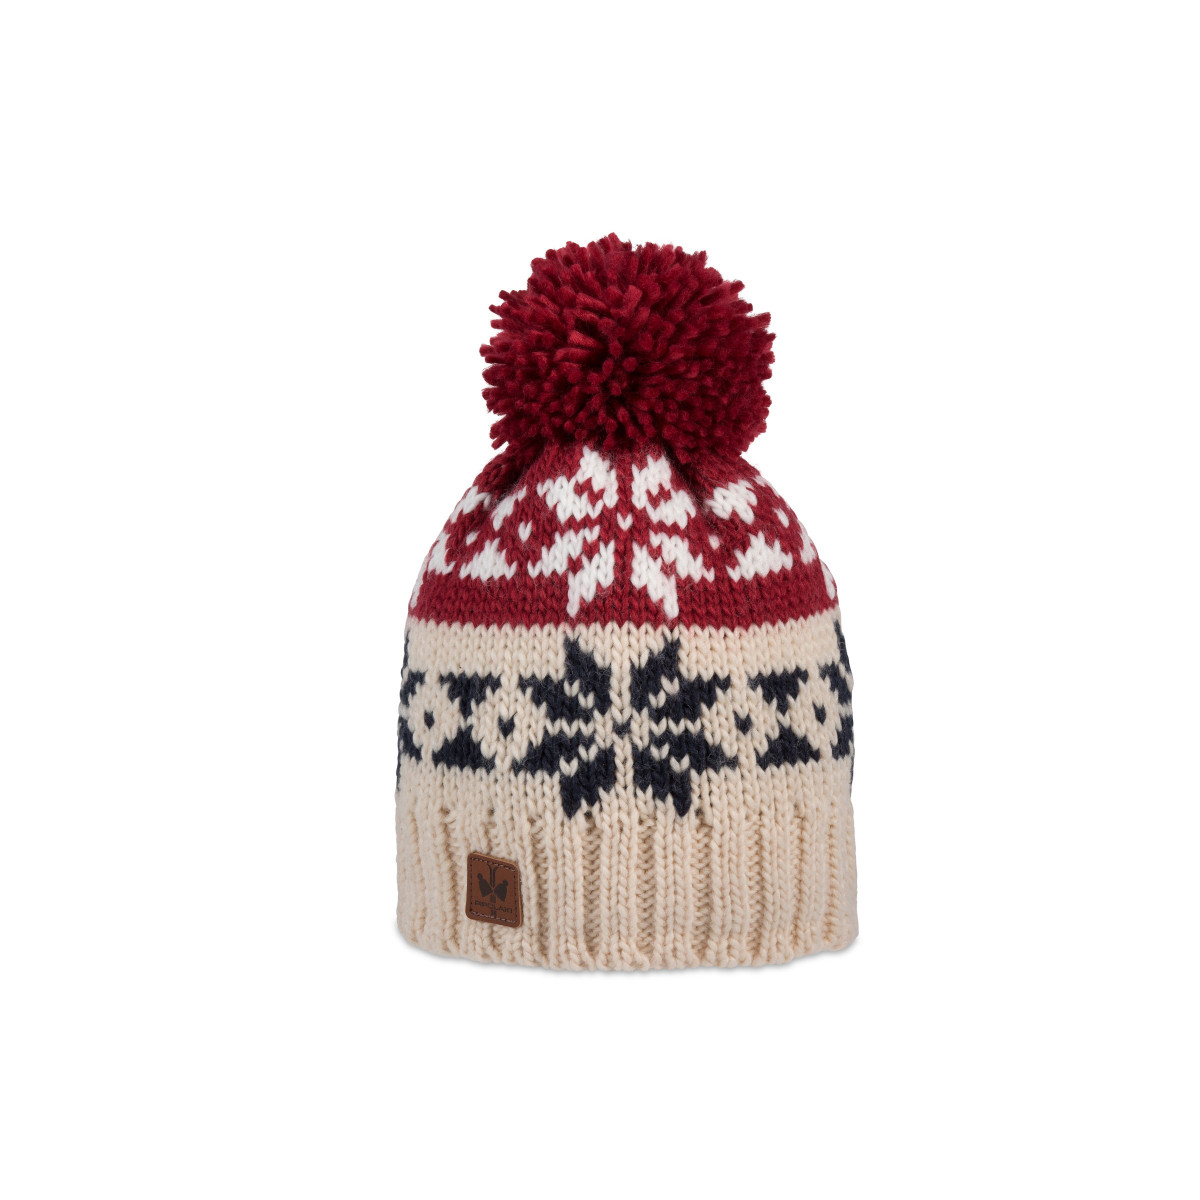 Ribbed knitted bobble hat with snowflake patterns and fleece lining